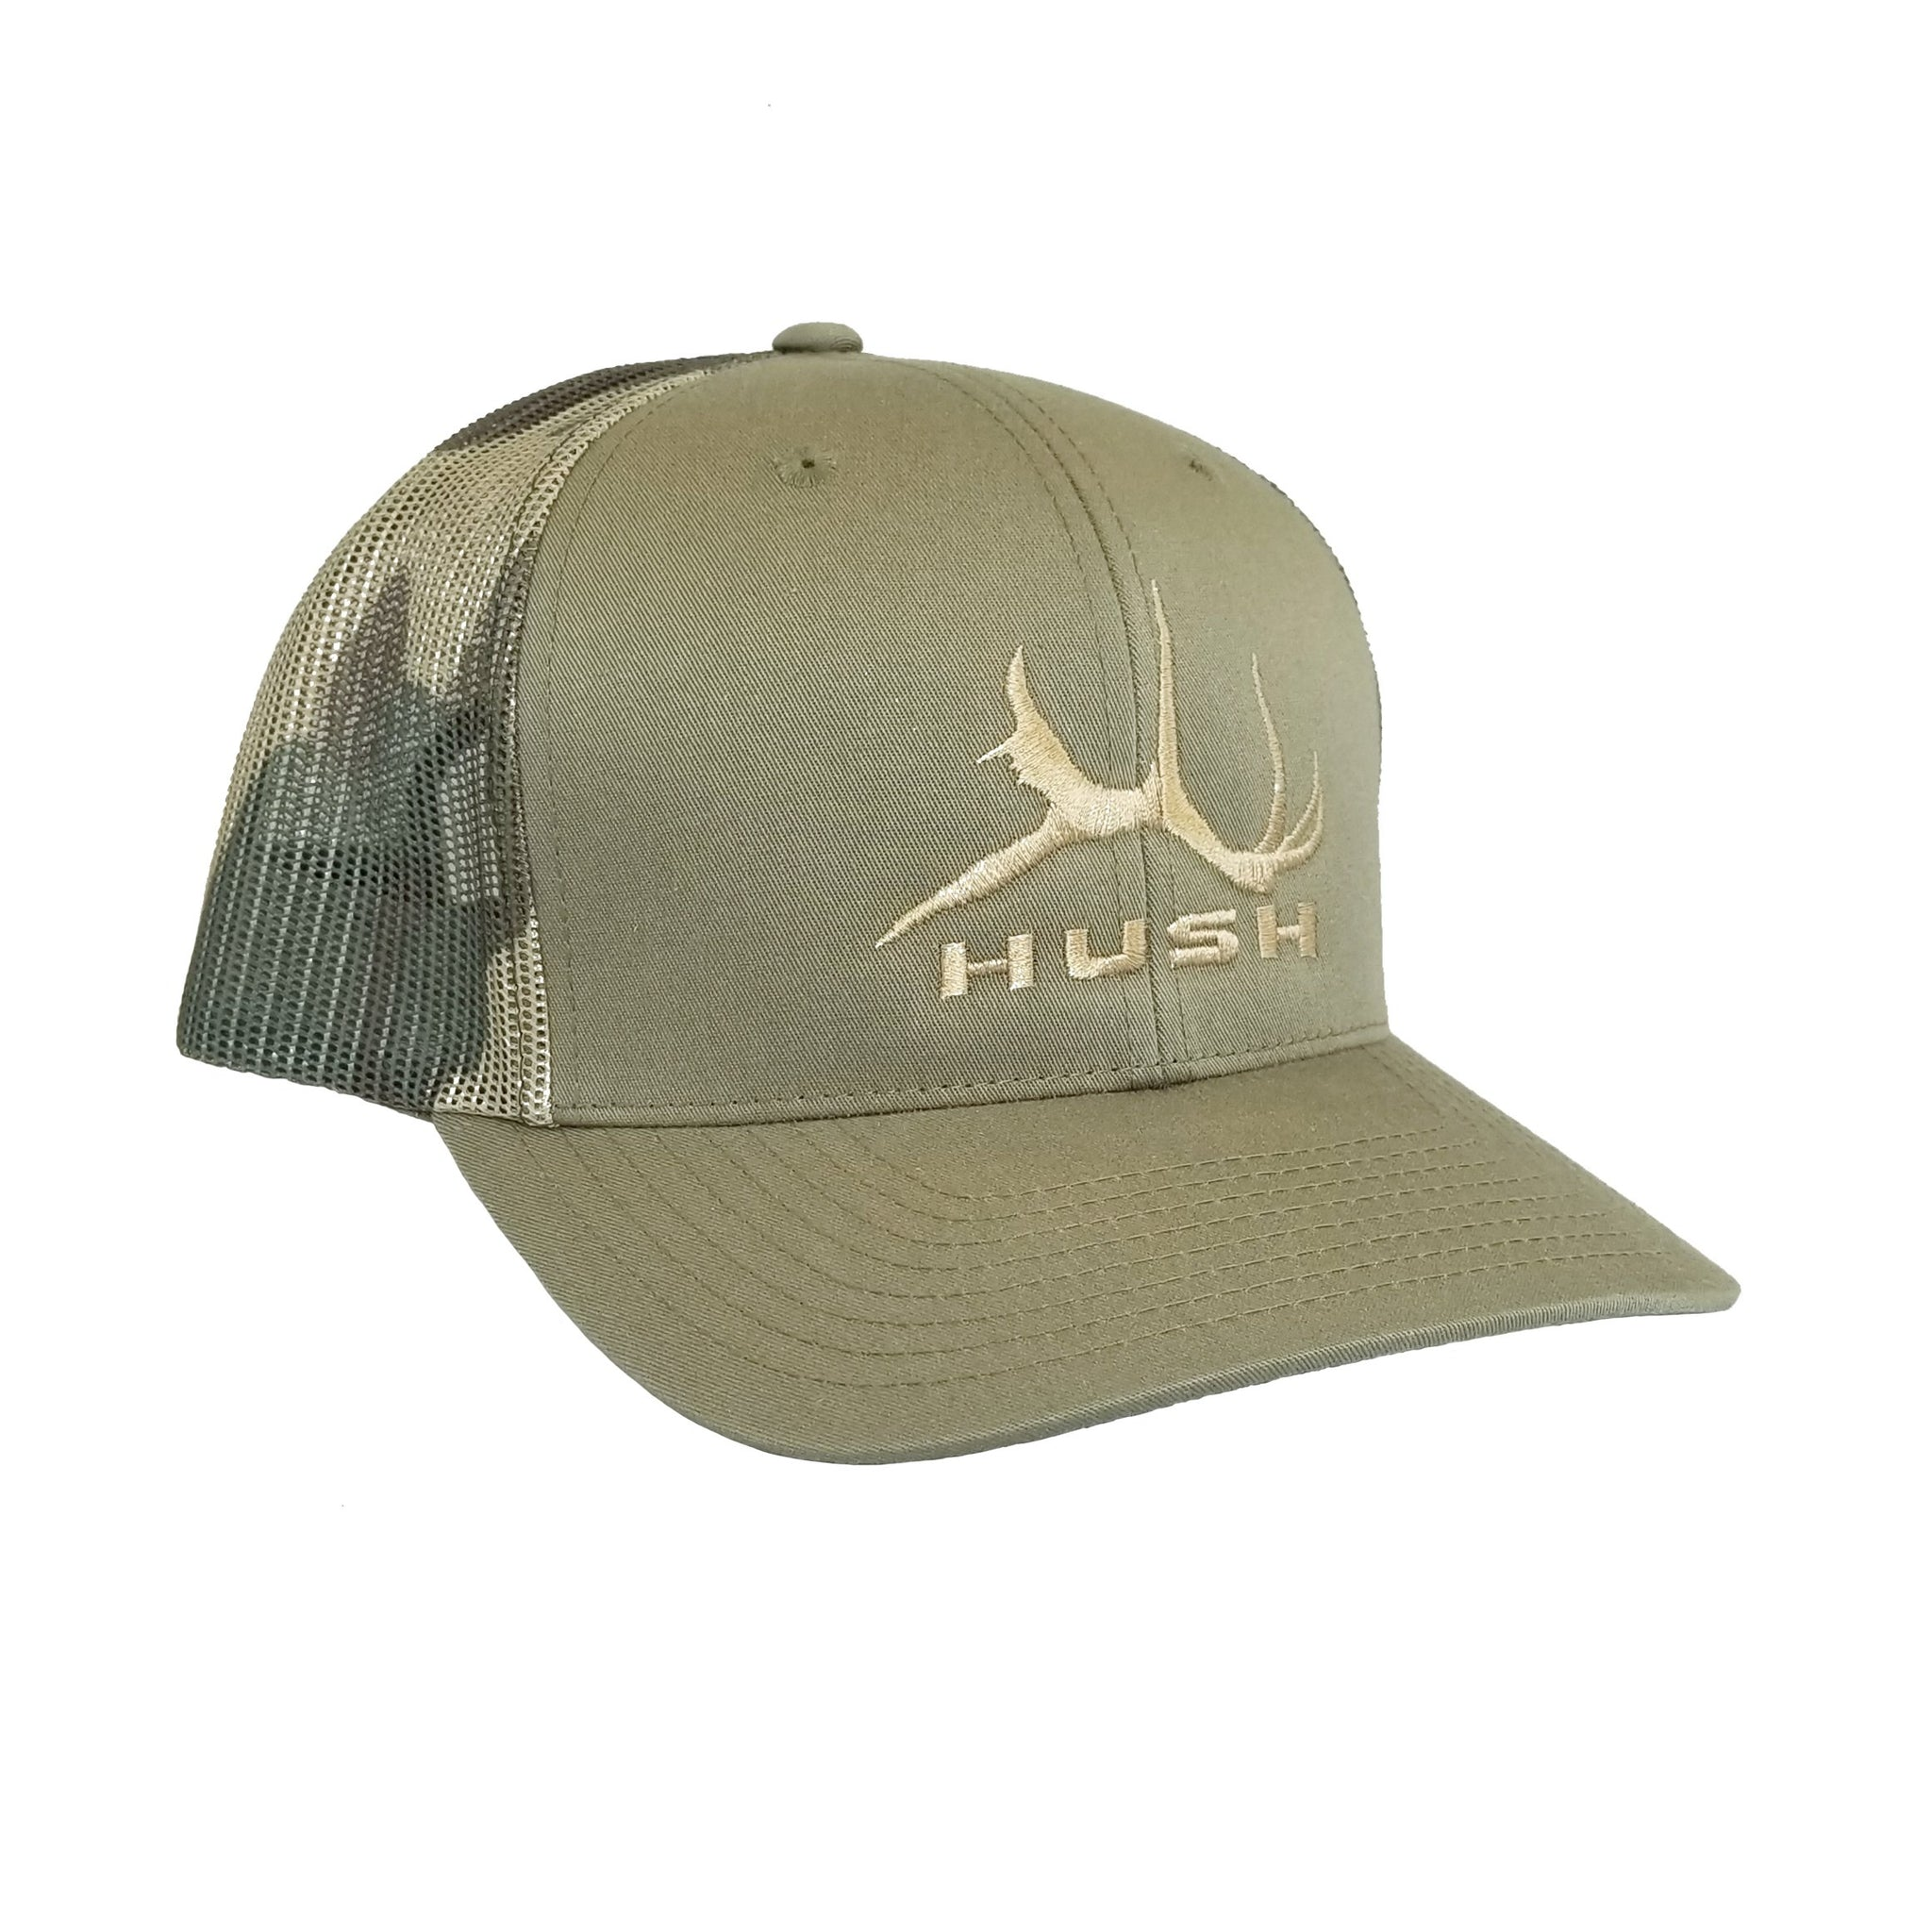 Zion Hat + Camo Block Shirt + Camo Mesh Block Hat Discounted Bundle